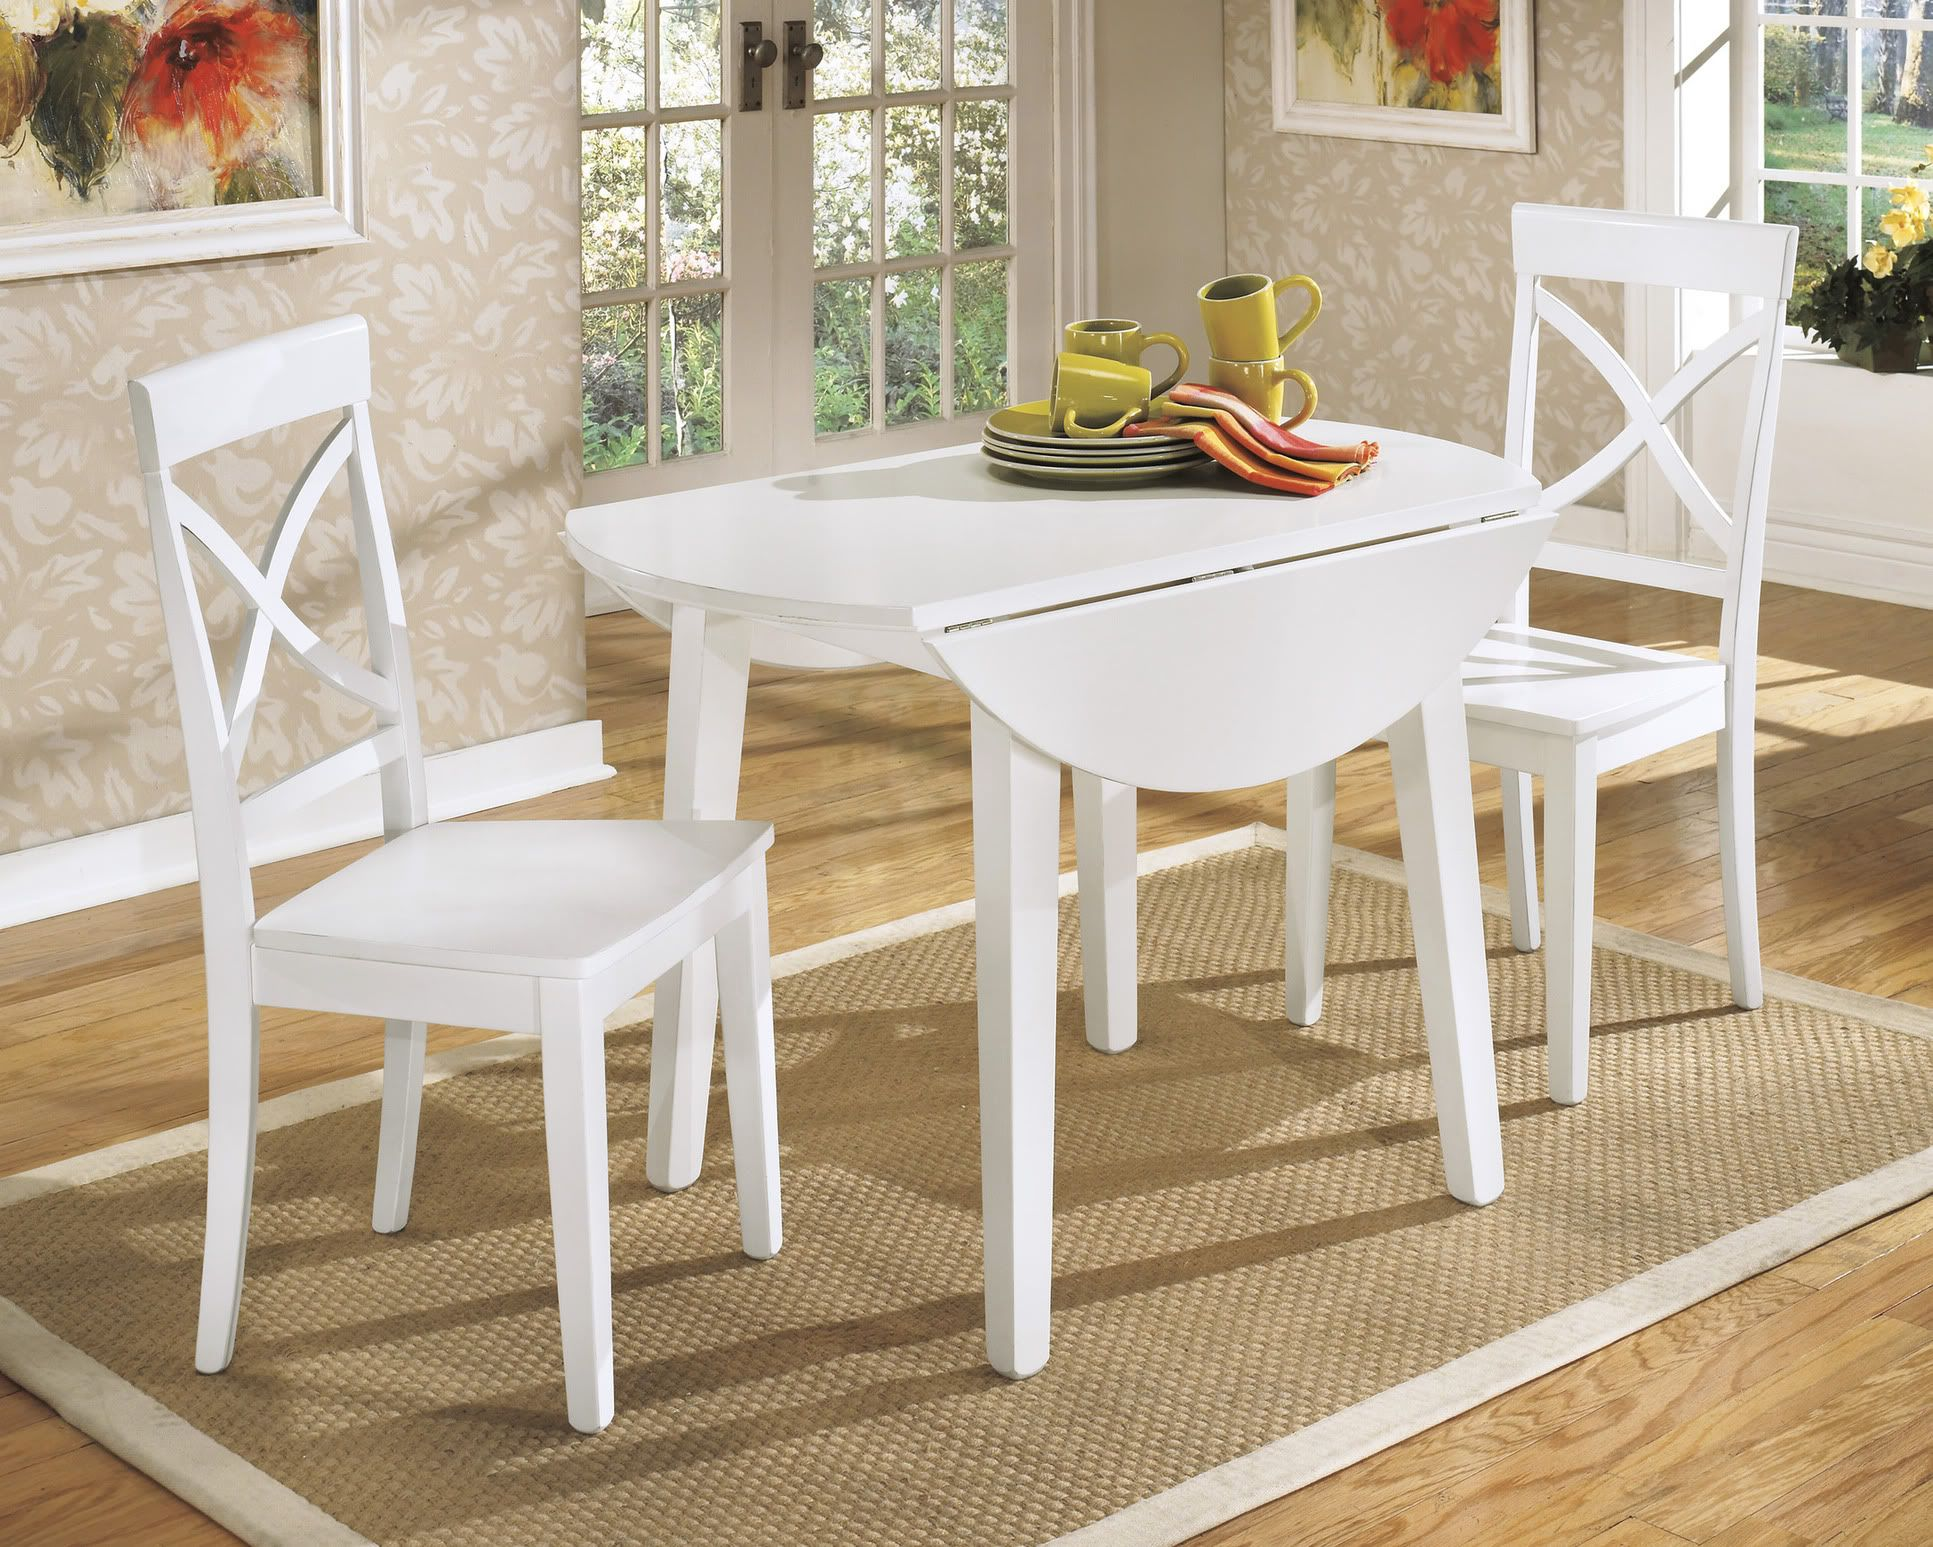 Awesome Sketch Of Beautiful White Round Kitchen Table And Chairs